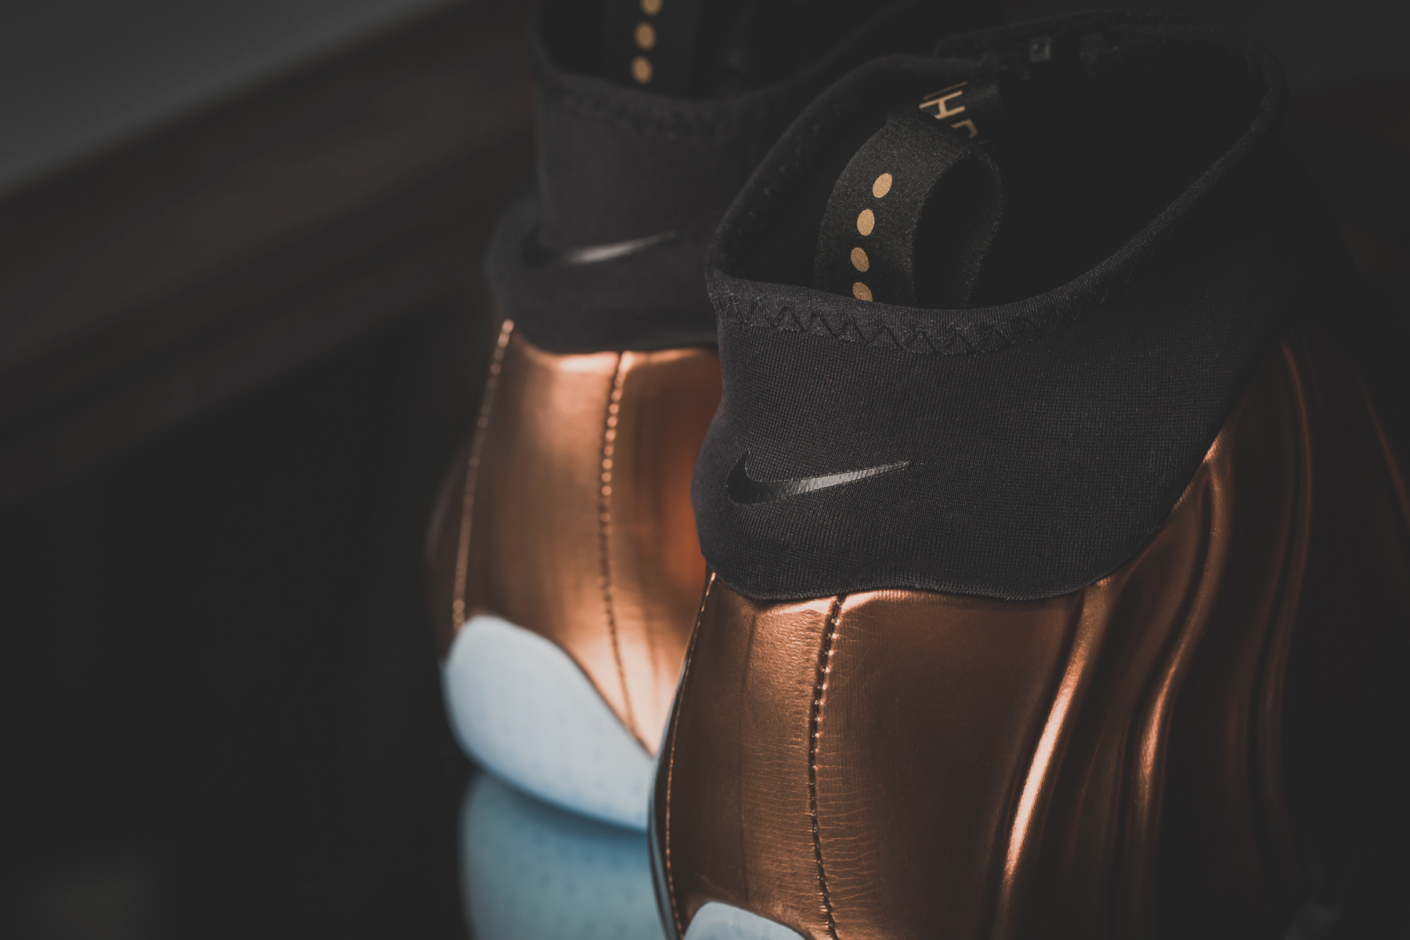 Copper Nike Flightposite 6